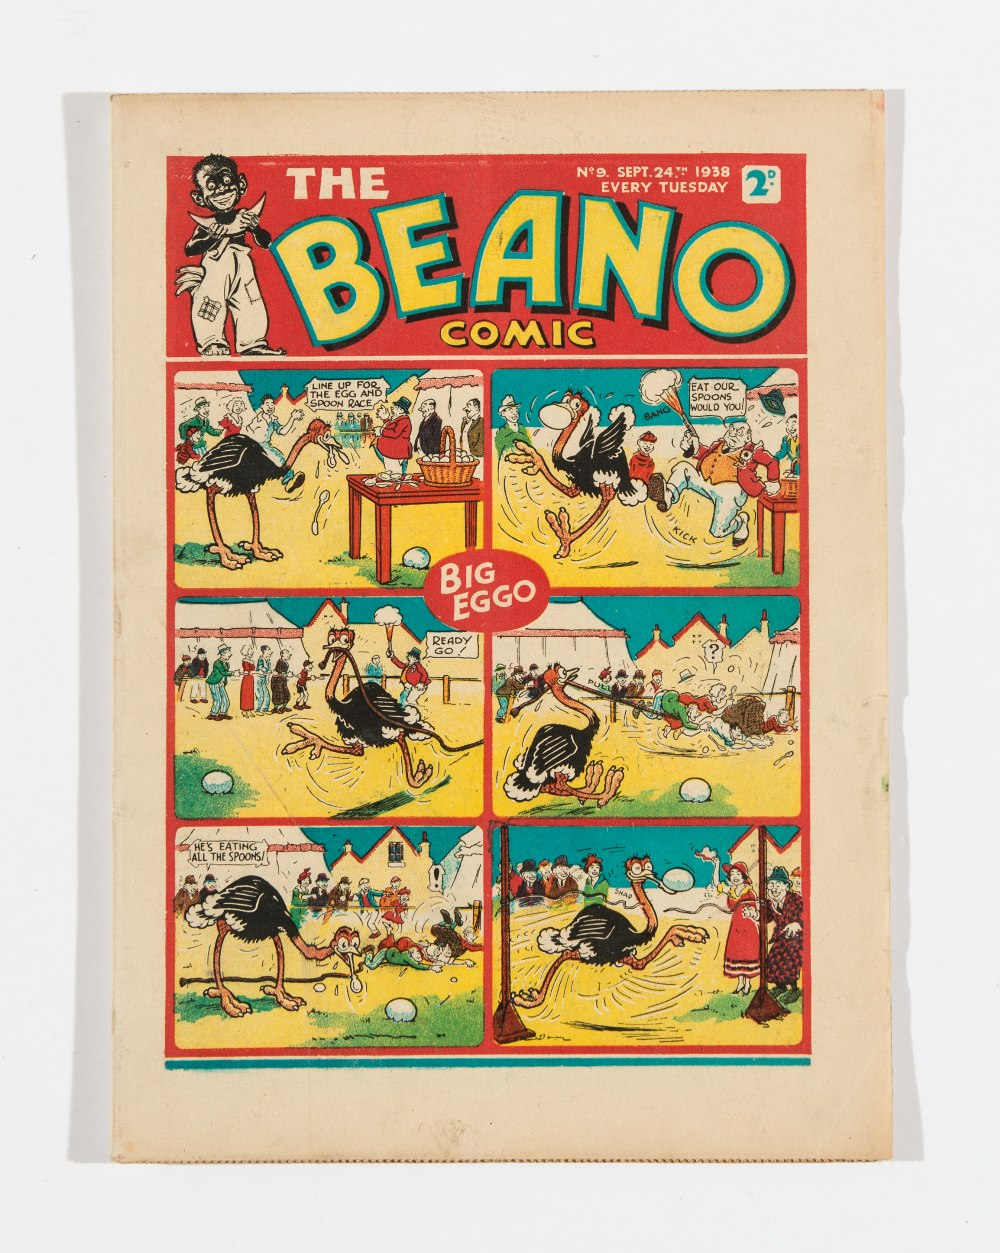 Lot 40 - Beano No 9 (1938). Bright, fresh covers, cream pages. Only a handful of copies known to exist [vfn]